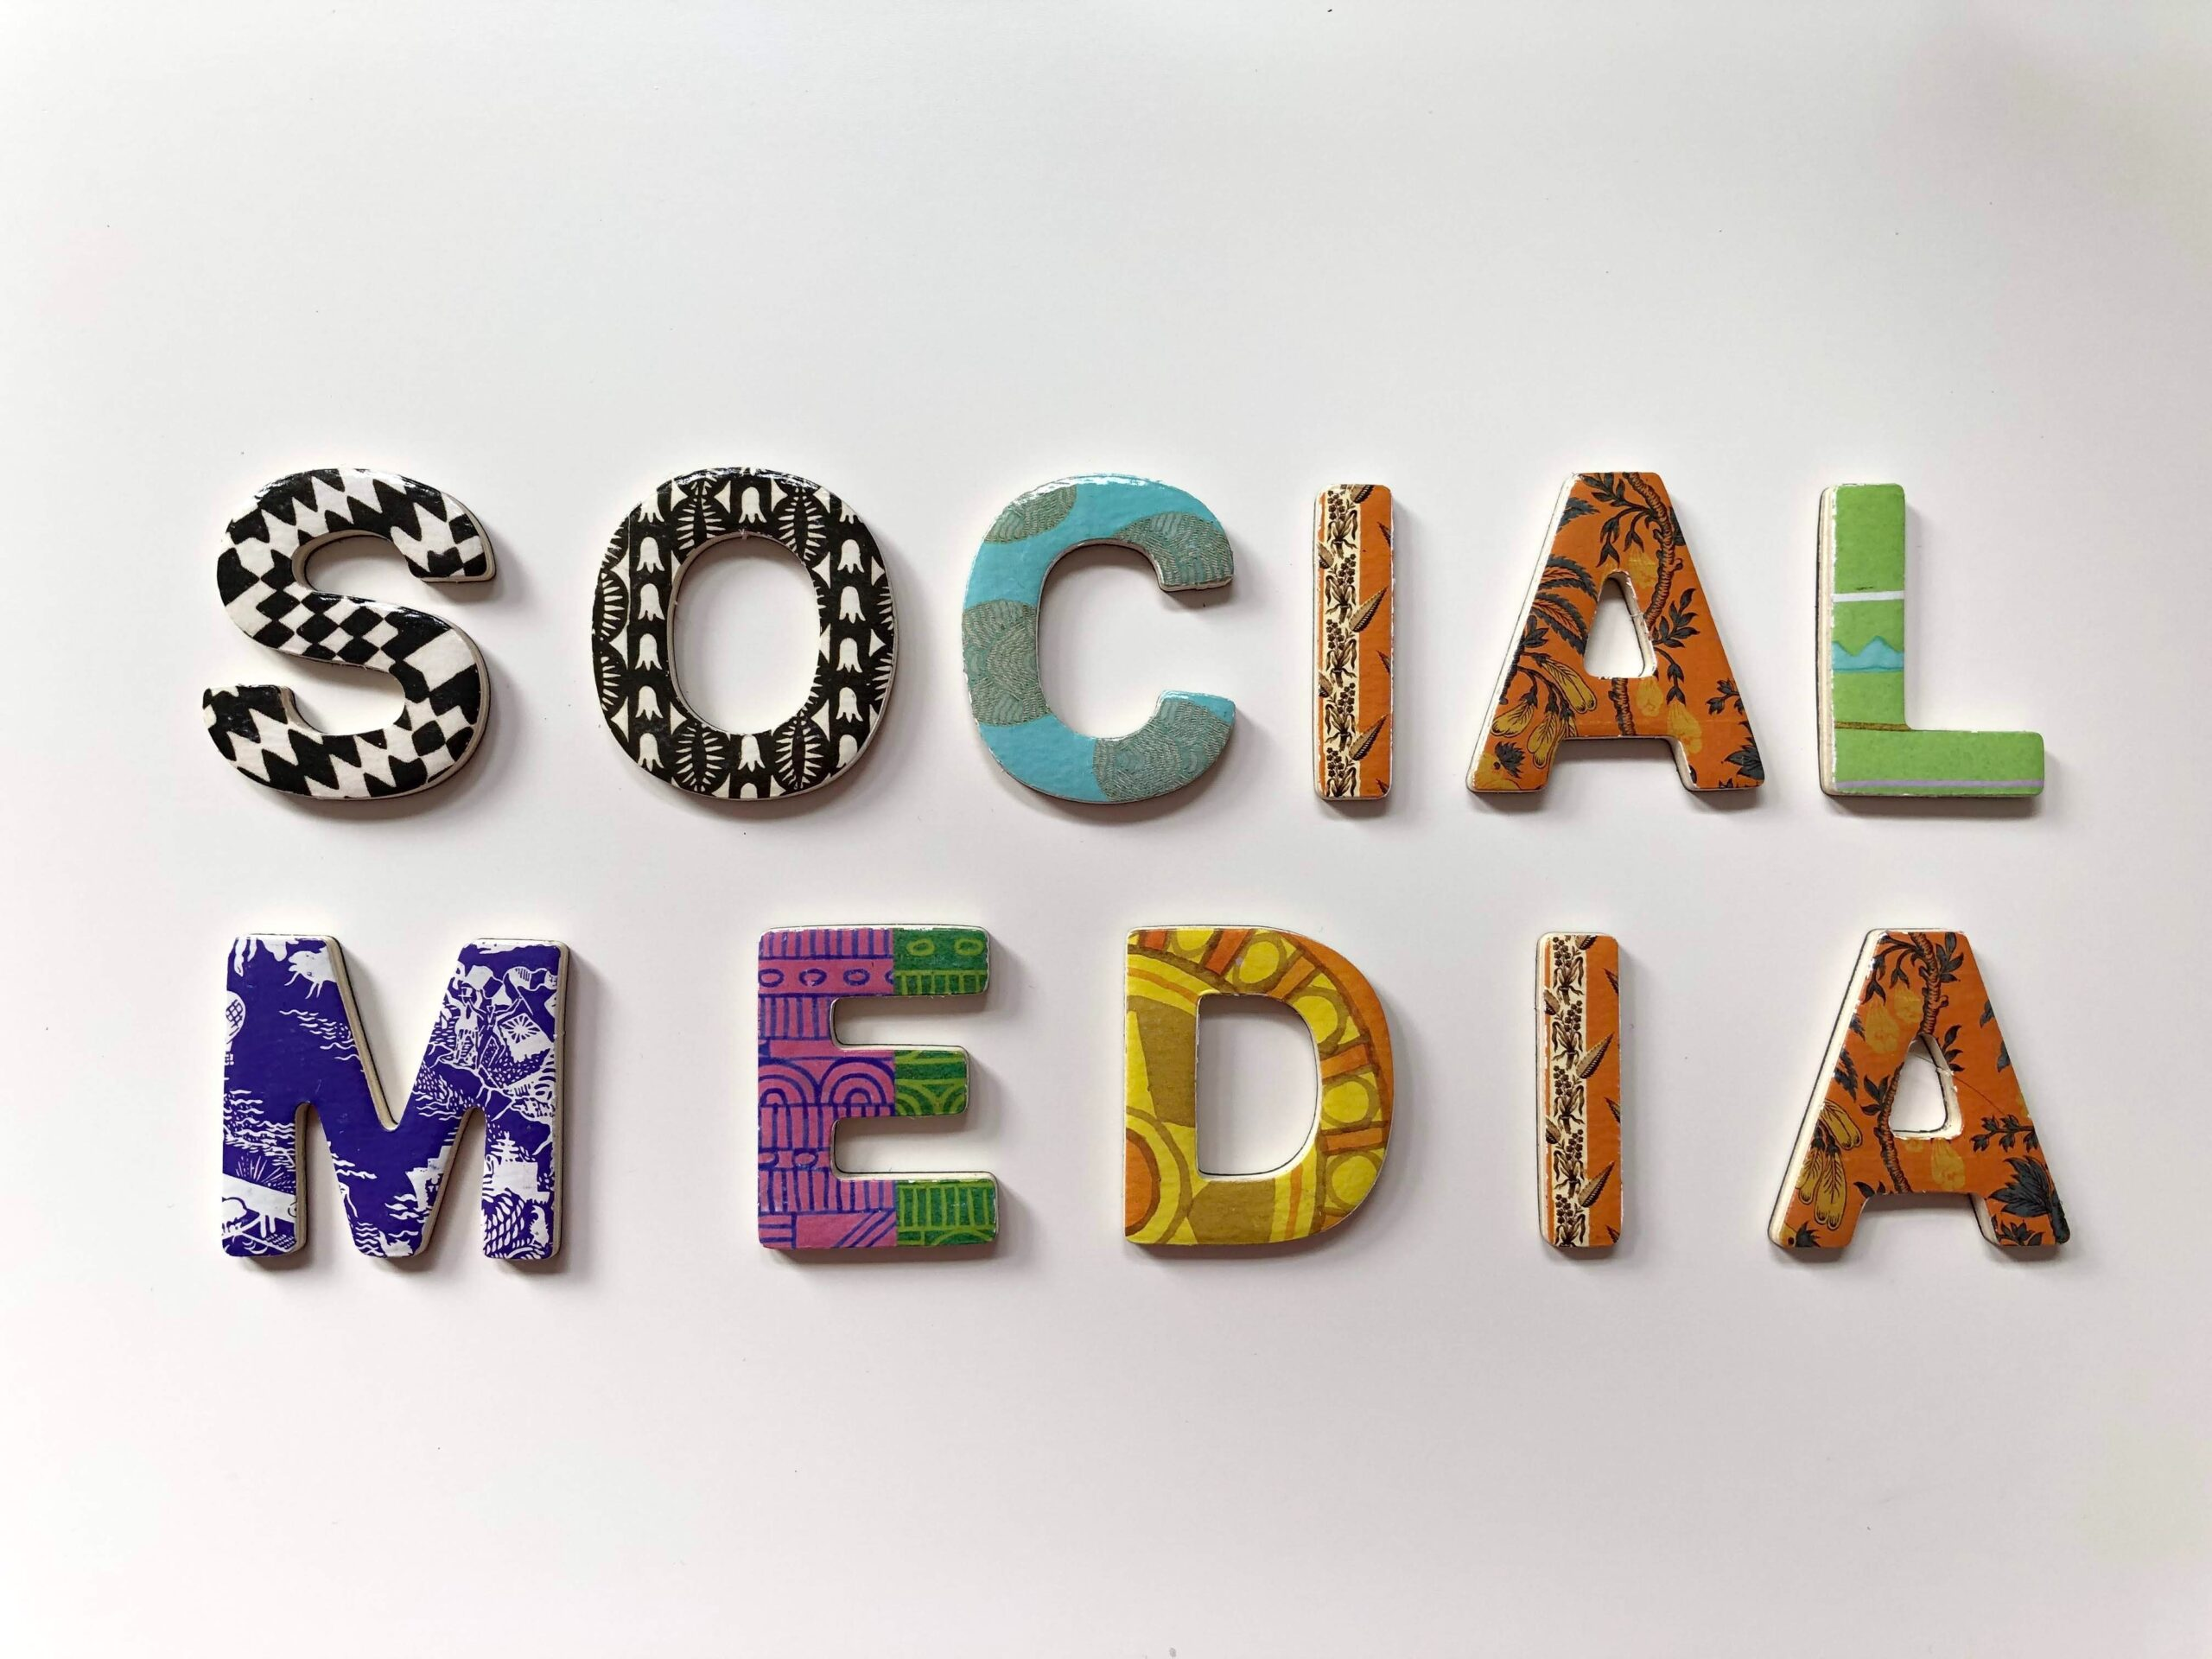 3D decorative patterned letters on white background spelling the word 'social media'